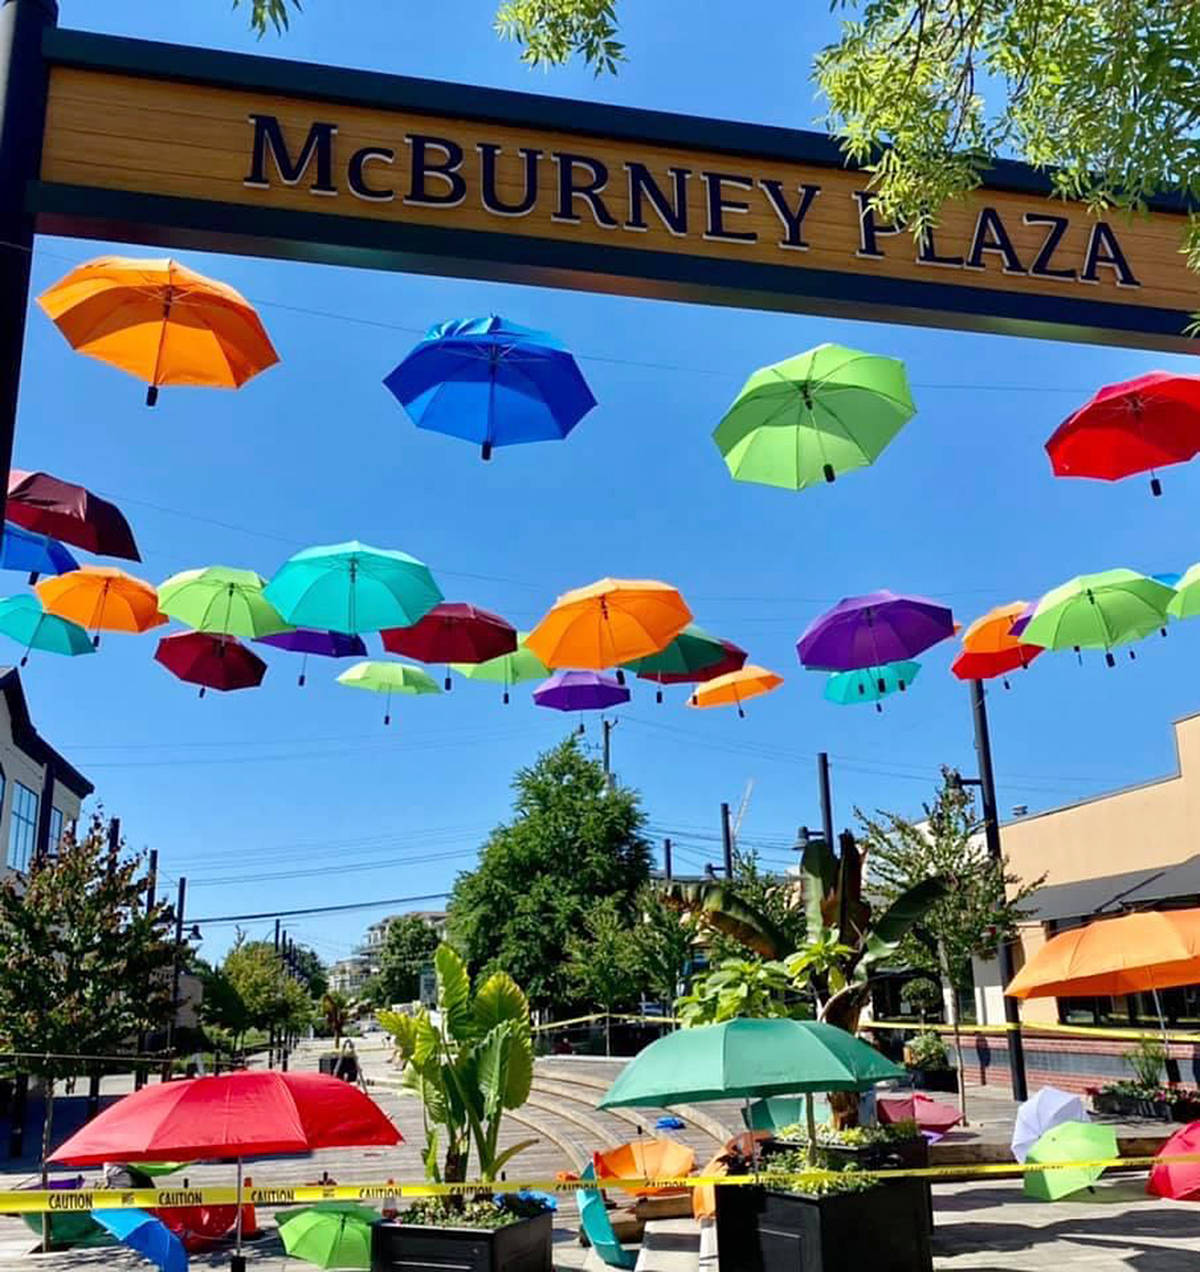 Hundreds of colourful umbrellas have been strung up over McBurney Plaza as part of a temporary outdoor art installation executed by the City of Langley. (Heather Colpitts/Langley Advance Times)